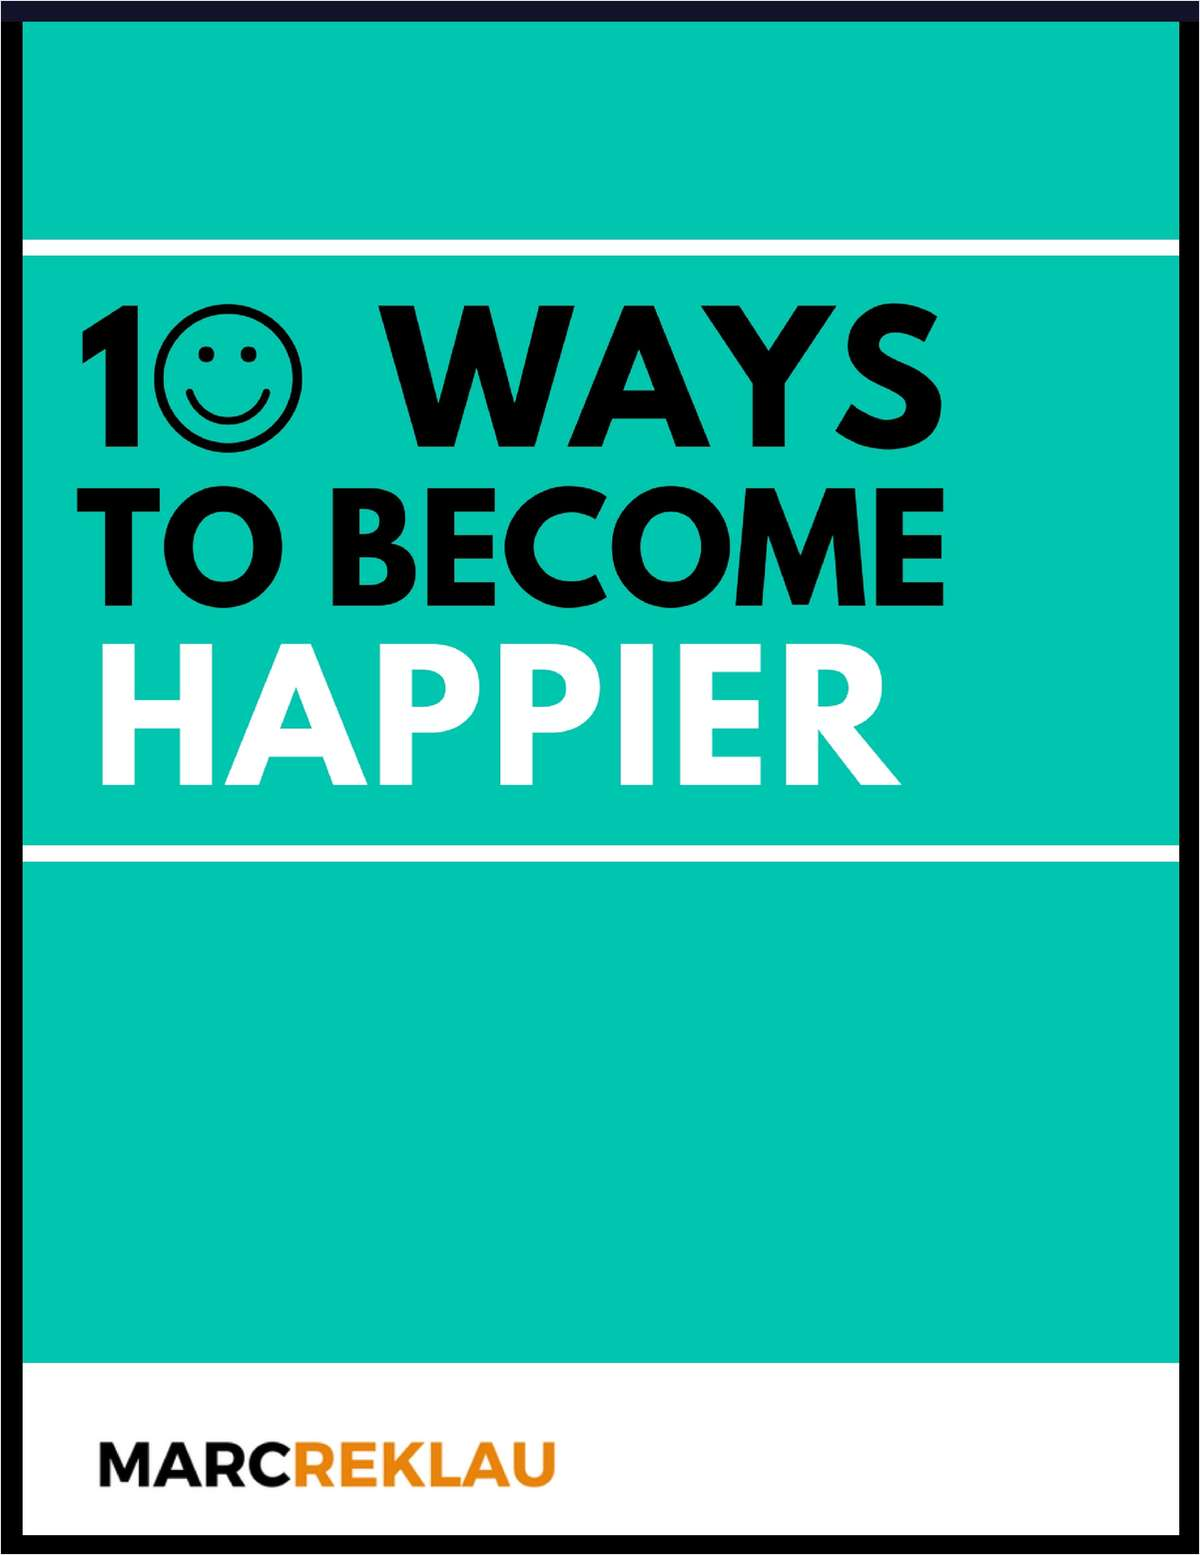 10 Ways to Become Happier